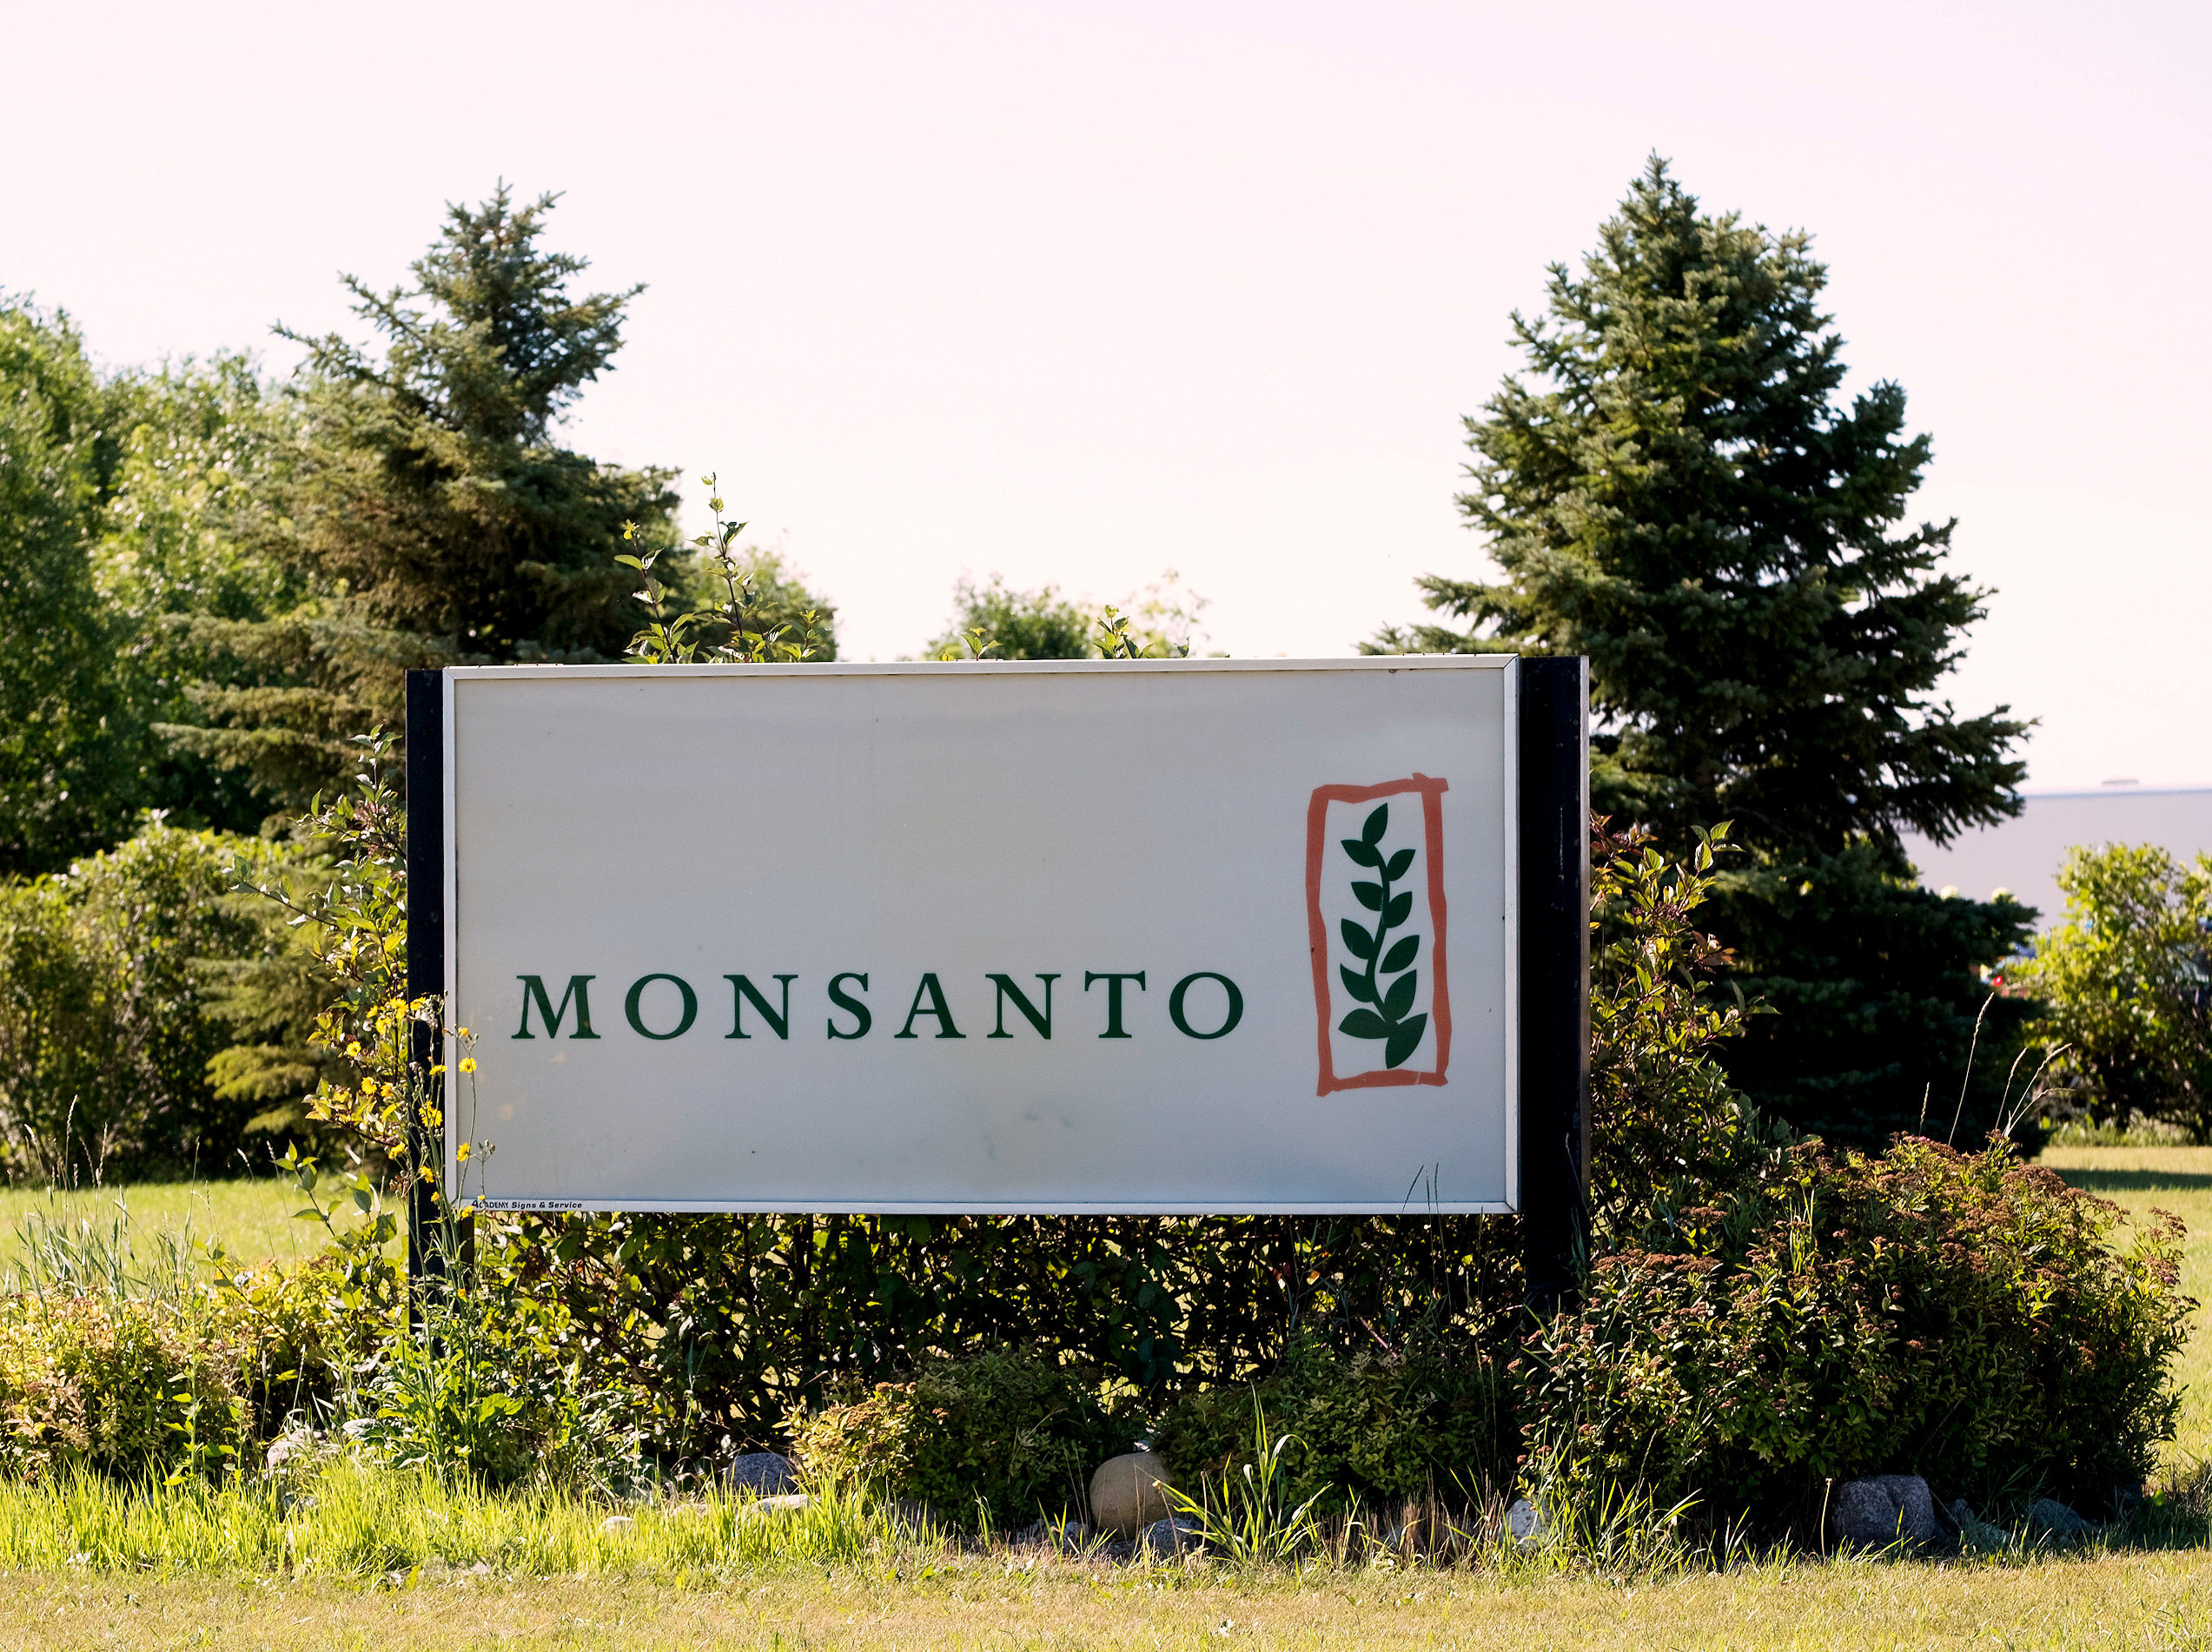 Monsanto's research farm is pictured near Carman, Manitoba, Canada on August 3, 2017.